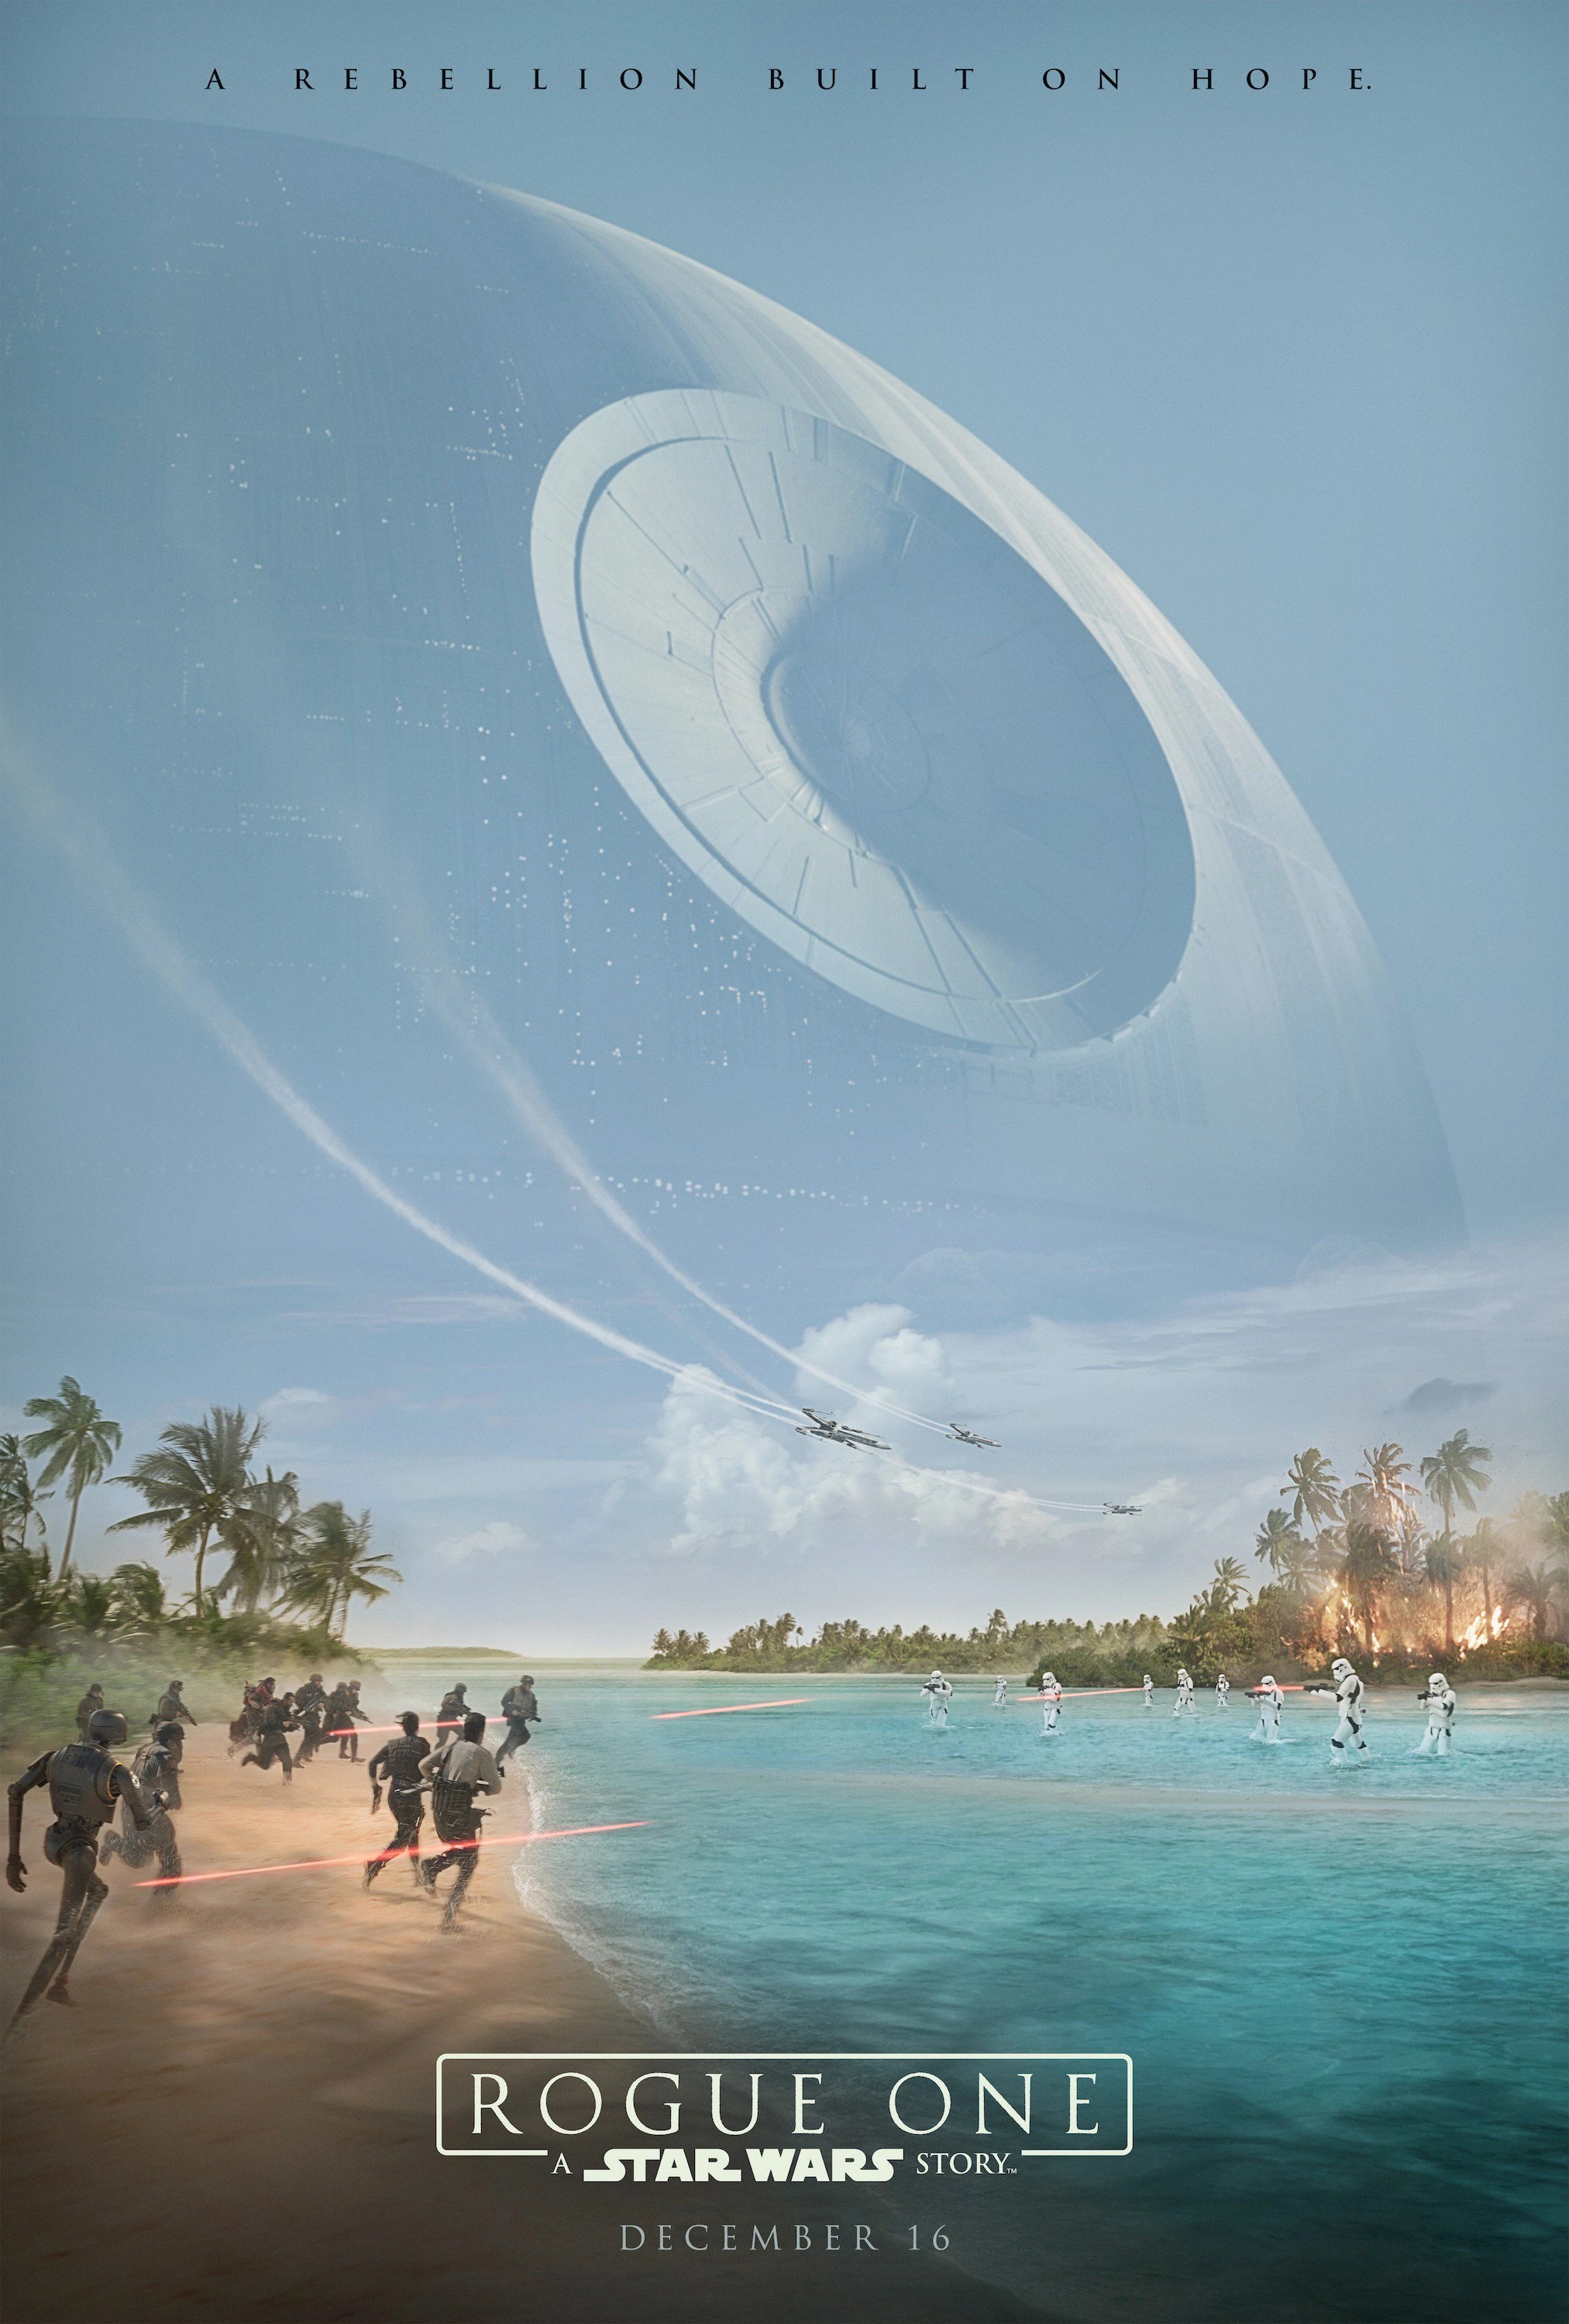 rogue one poster coming new in dec 2016